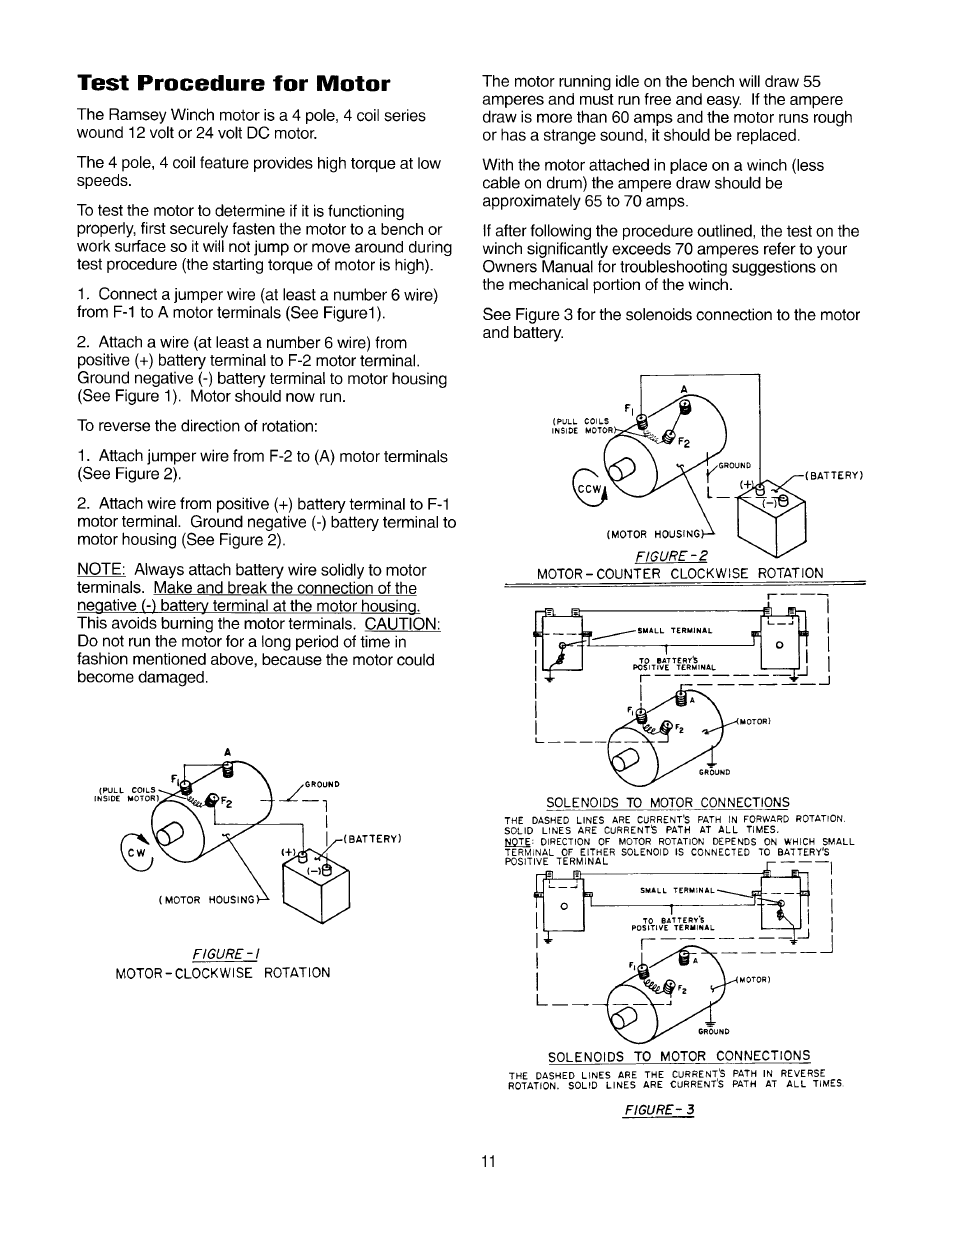 ramsey winch re 8000_10000_12000t page11?resize\\\\\=665%2C861 post winch solenoid wiring diagram 6 amc solenoid wiring diagram 4 post continuous duty solenoid wiring diagram at highcare.asia